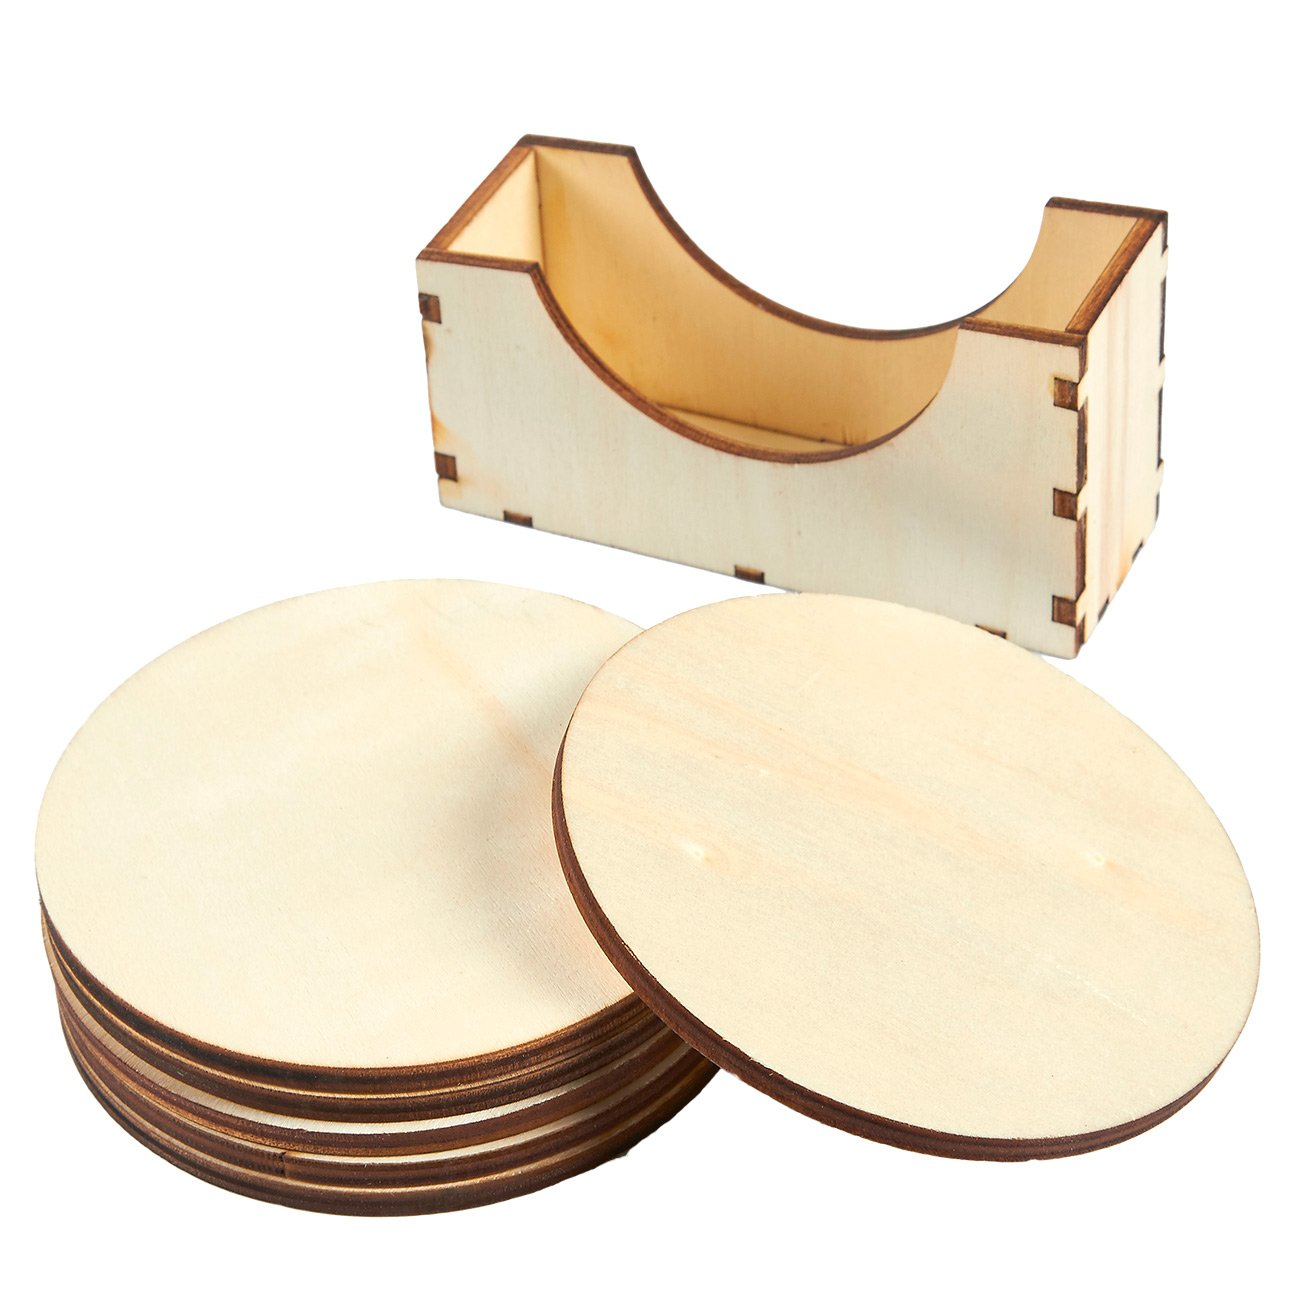 Wood Coasters - 6-Pack Round Wooden Drink Coasters with Holder, Unfinished Wood Circle Cup Coasters for Home Kitchen, Office Desk, 3.875 Inches Diameter by Juvale (Image #1)